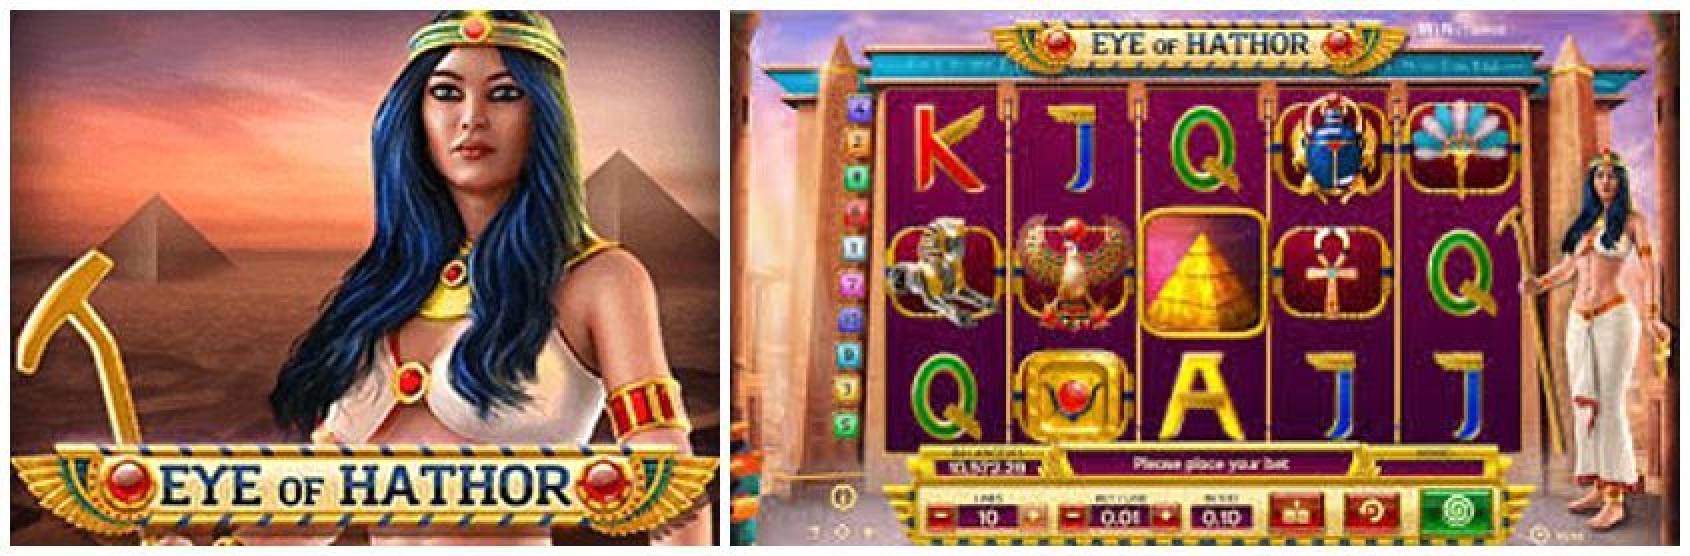 Win Money in Eye of Hathor Free Slot Game by BwinParty